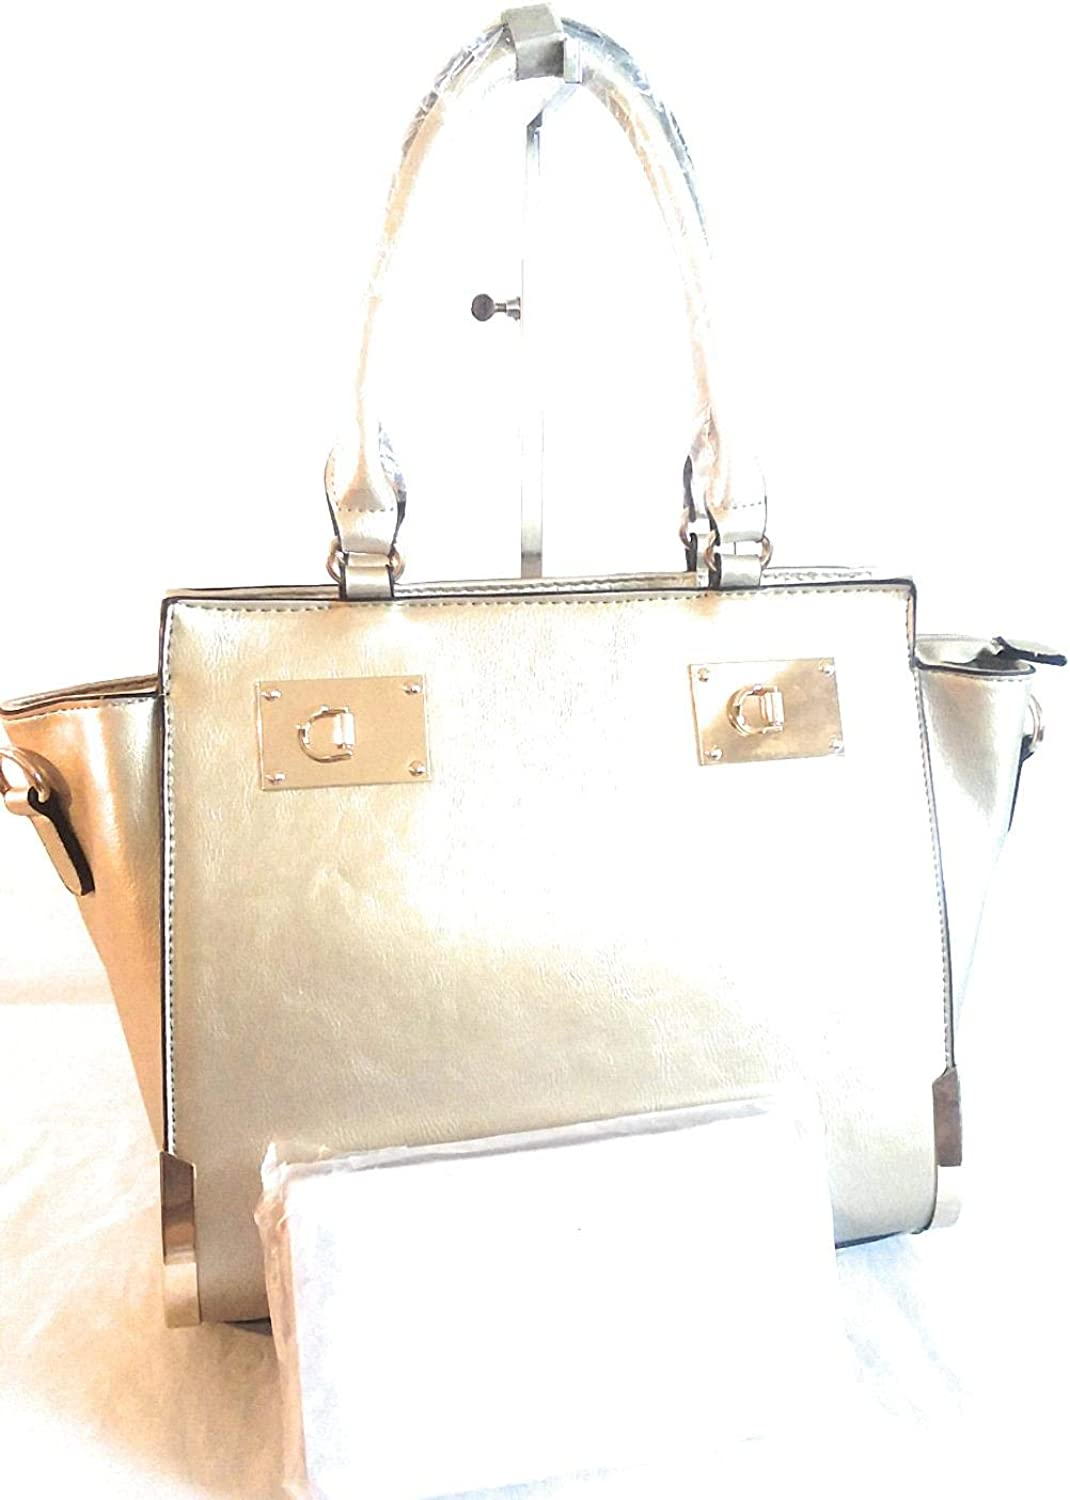 gold Womens Leather 2 Piece Purse Set w gold Trim